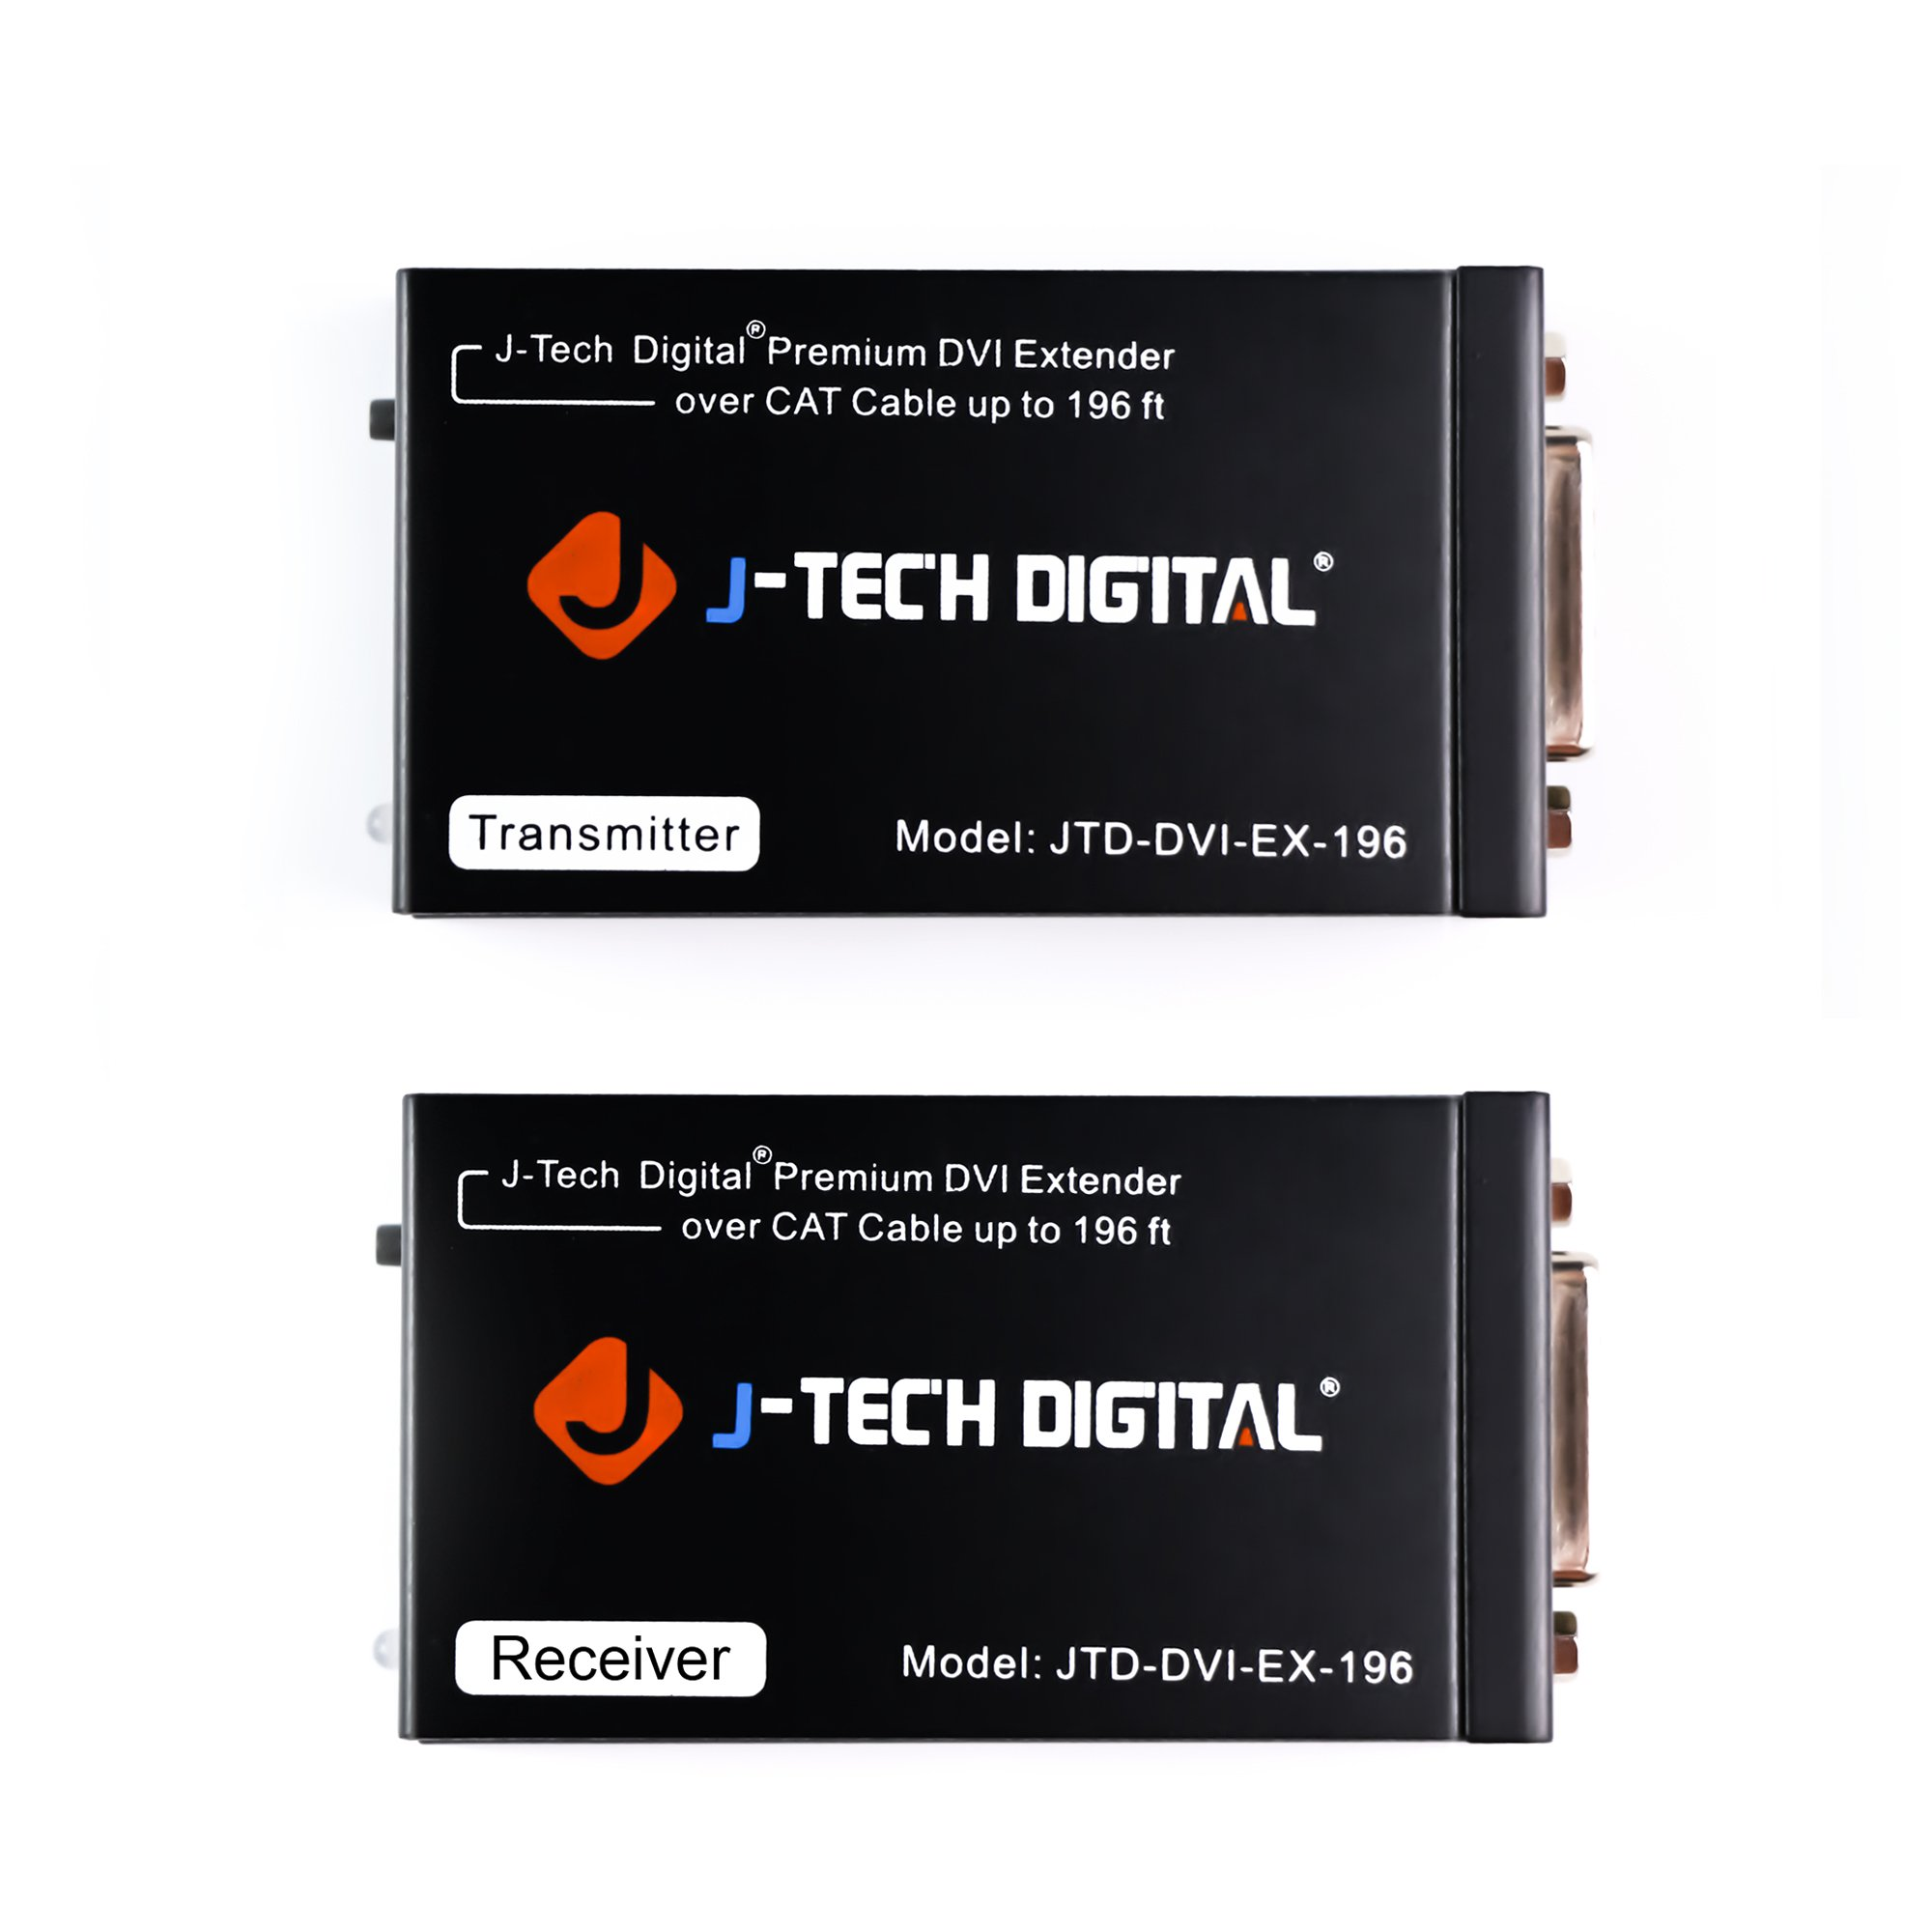 J-Tech Digital ProAV Premium Quality DVI Extender/DVI Amplifier/DVI Splitter Over CAT 5 / CAT 5E / CAT 6 Ethernet Cable